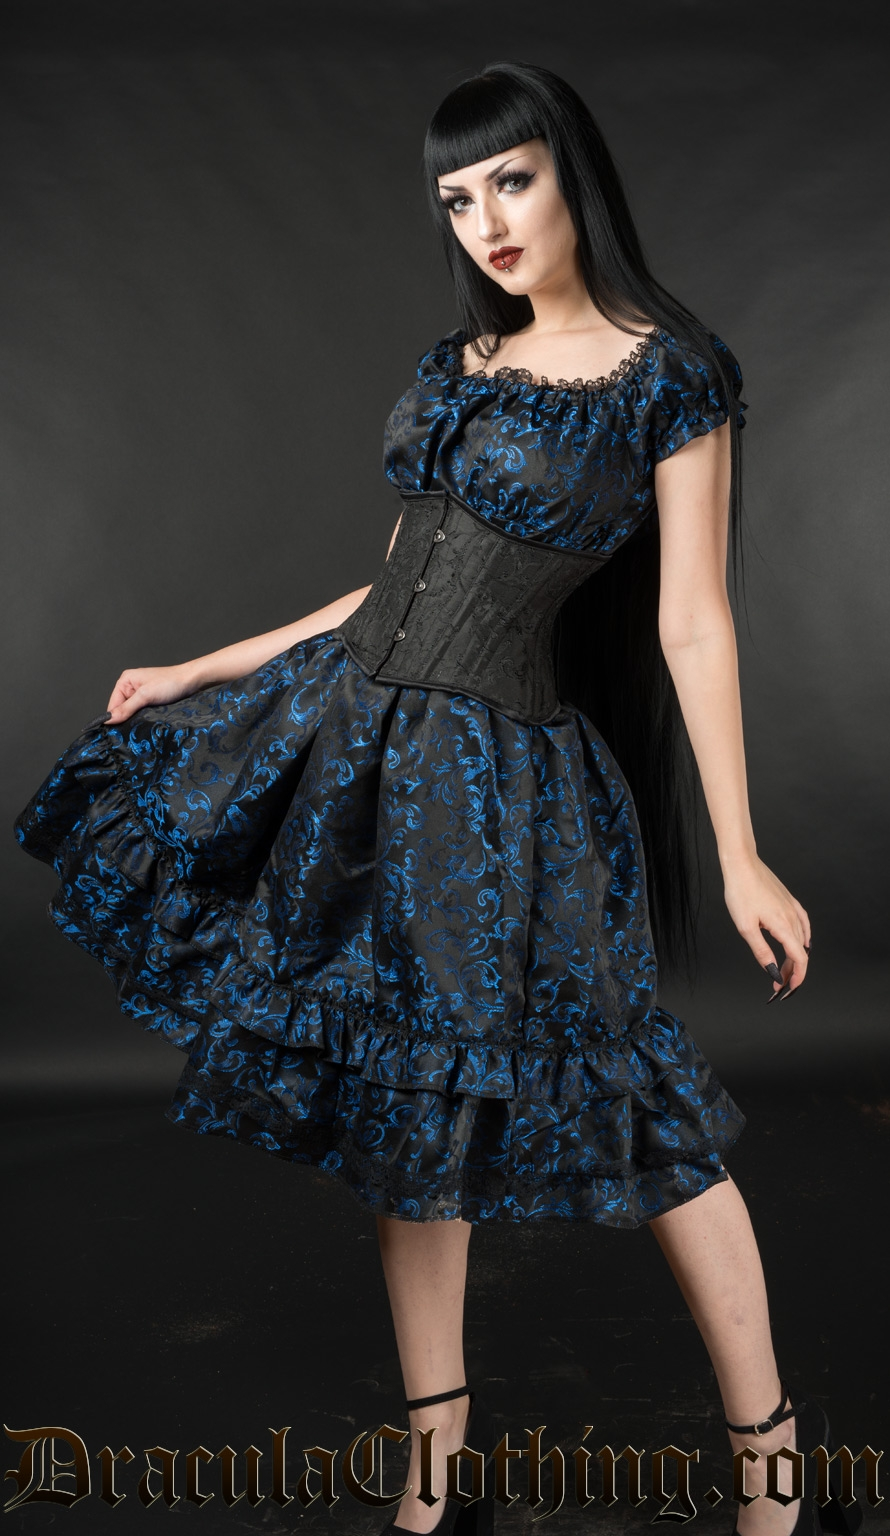 Blue Brocade Gothabilly Dress